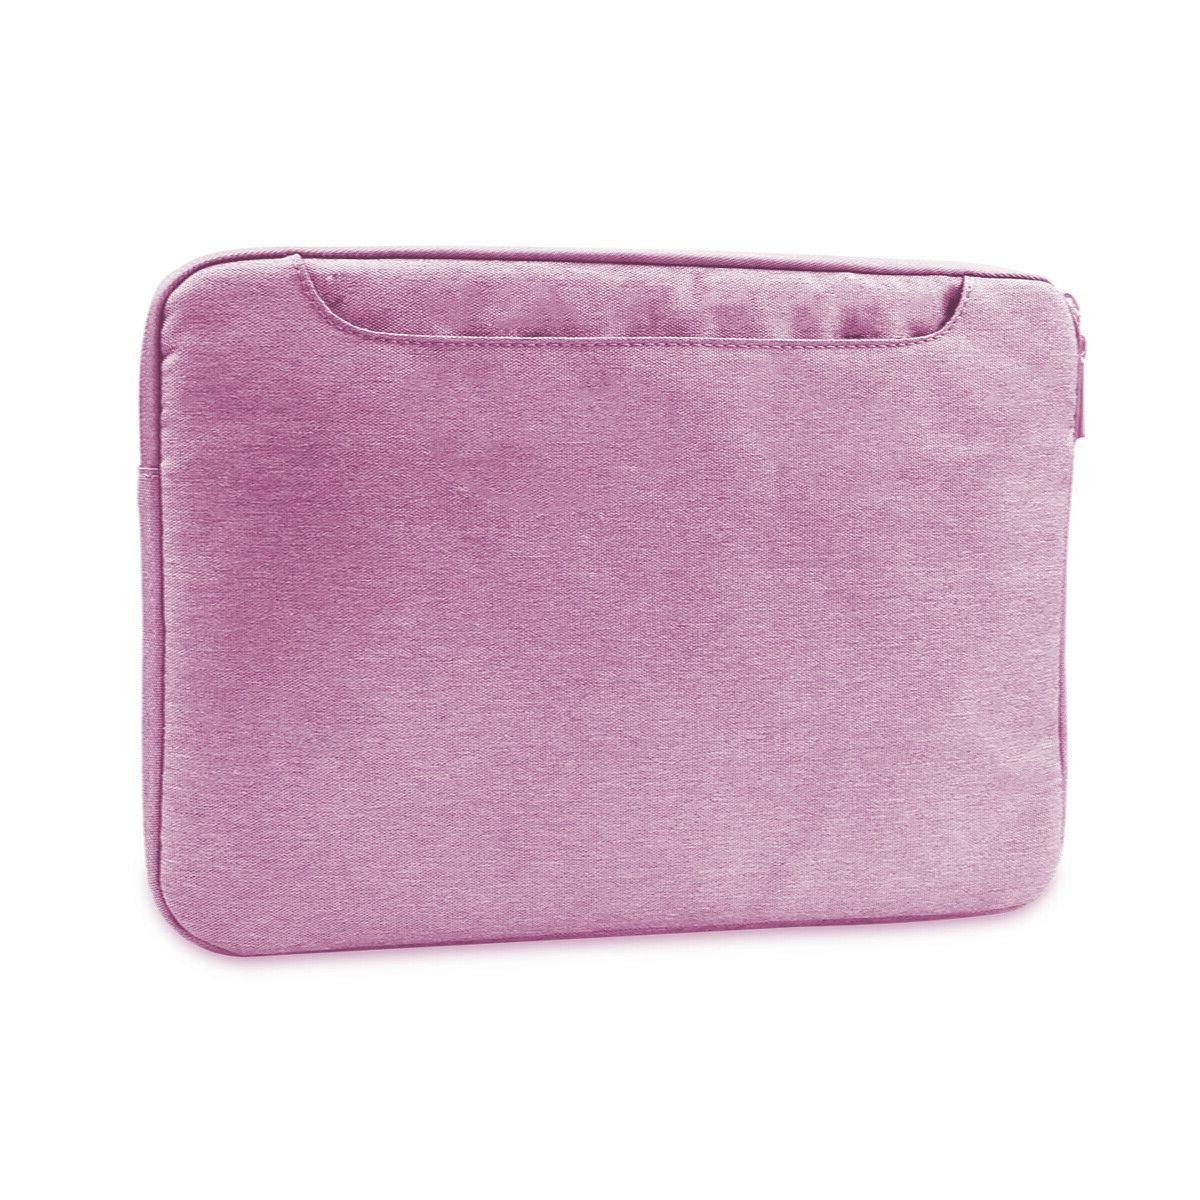 Water 11-13.3 Case Bag For iPad 6 Pink